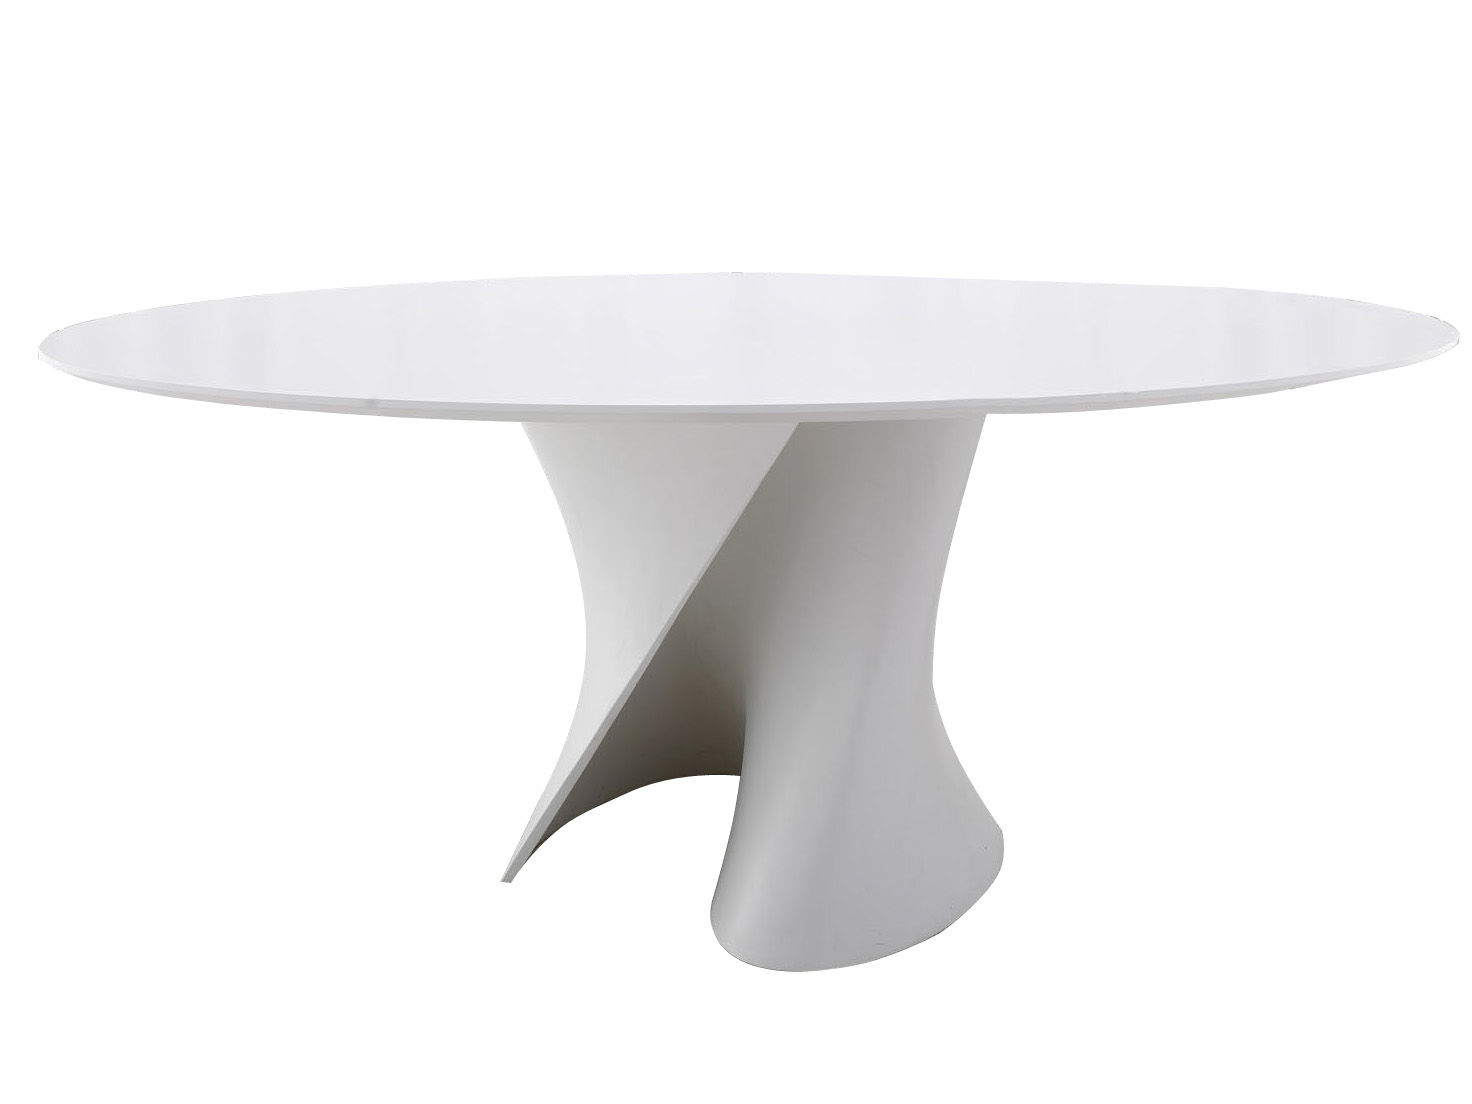 S table oval 150 x 210 cm white resin top white leg by for Tisch design oval